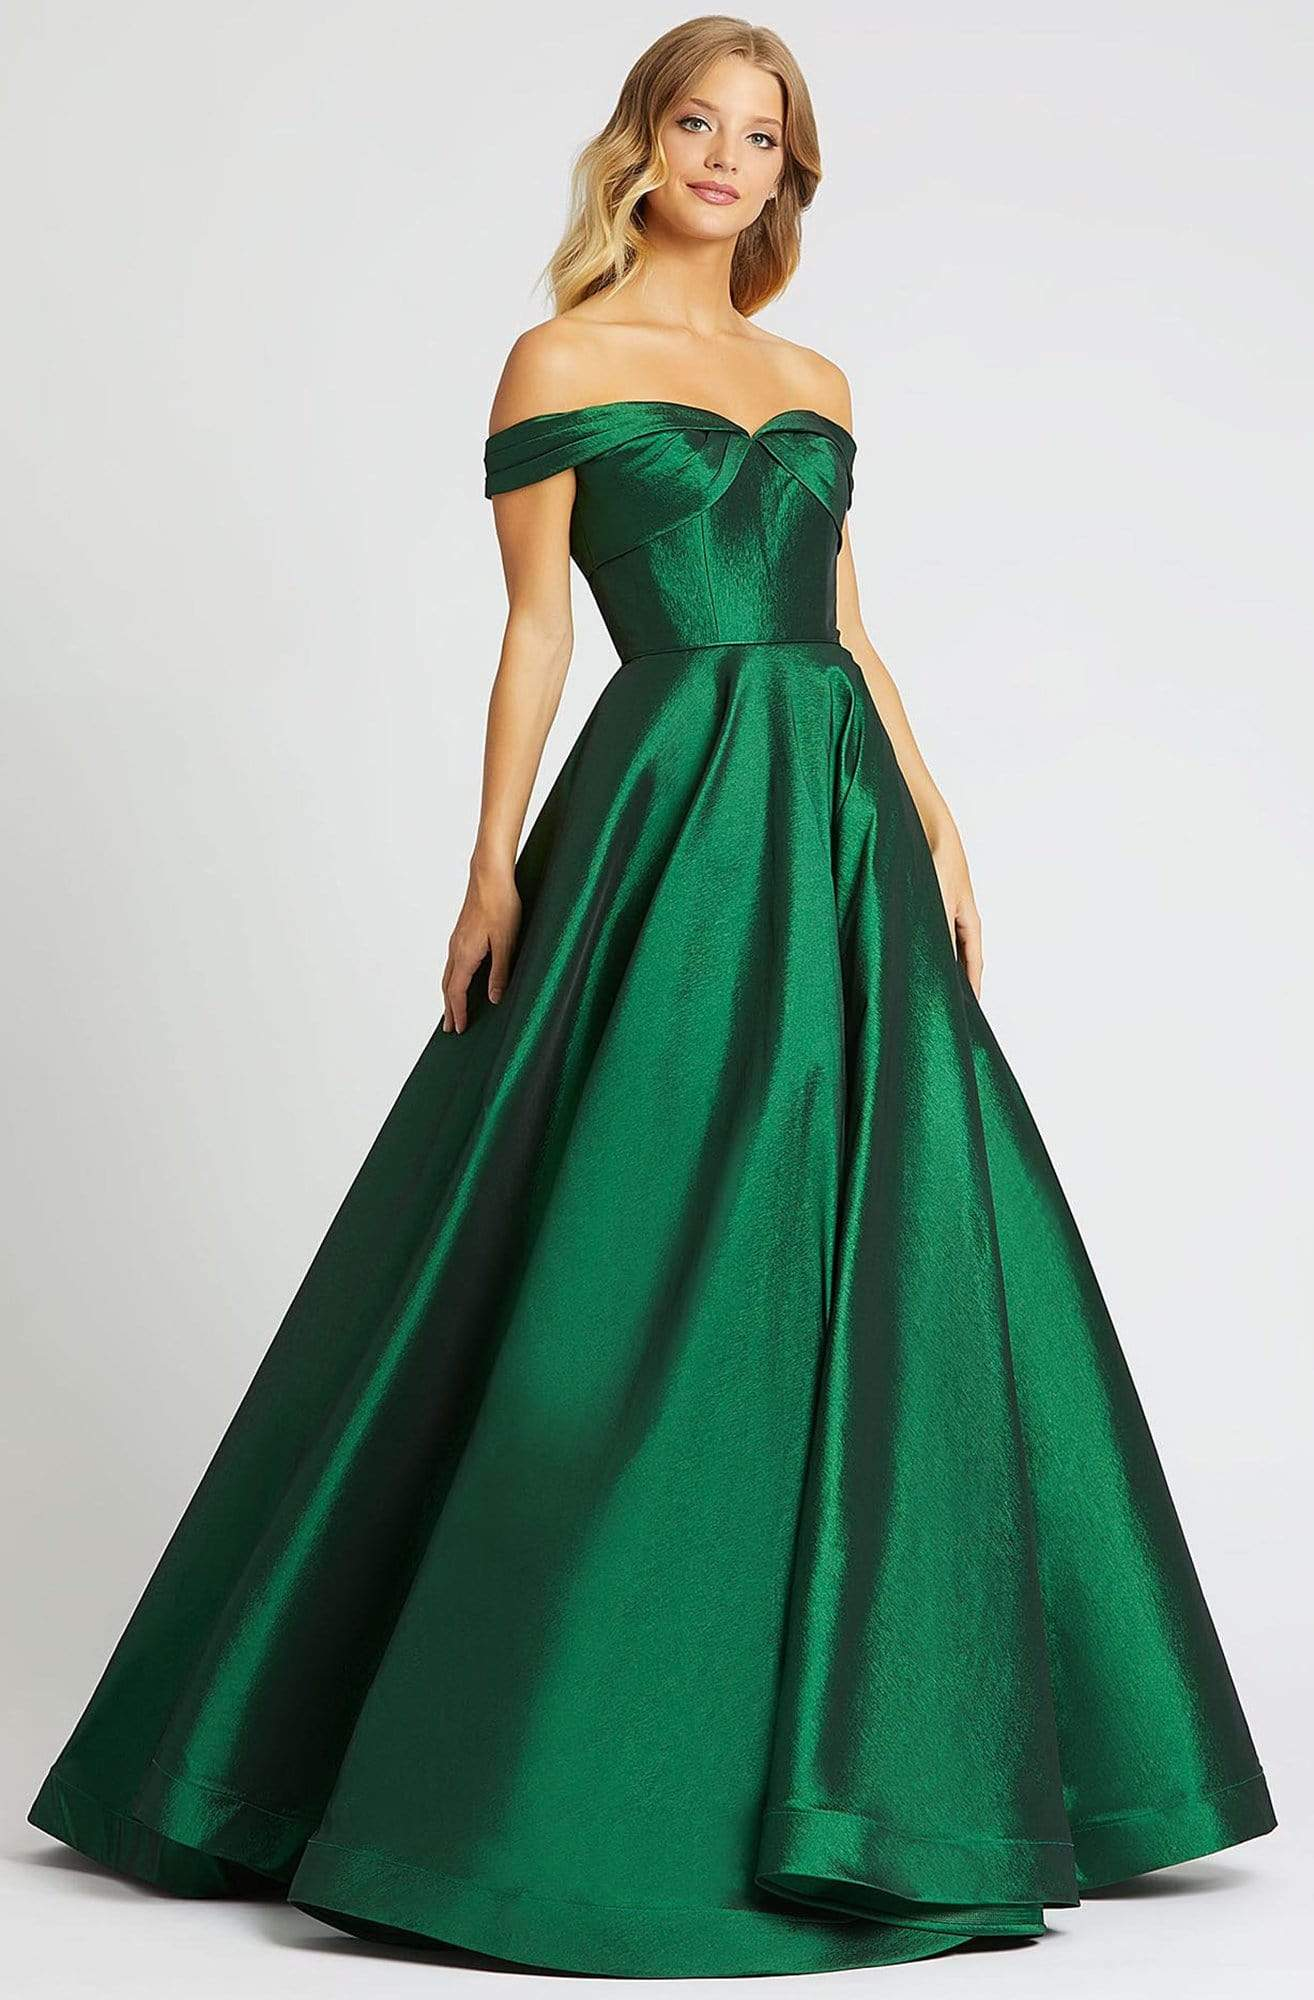 Mac Duggal Ballgowns - 67104H Off Shoulder V back Ballgown Ball Gowns 0 / Emerald Green